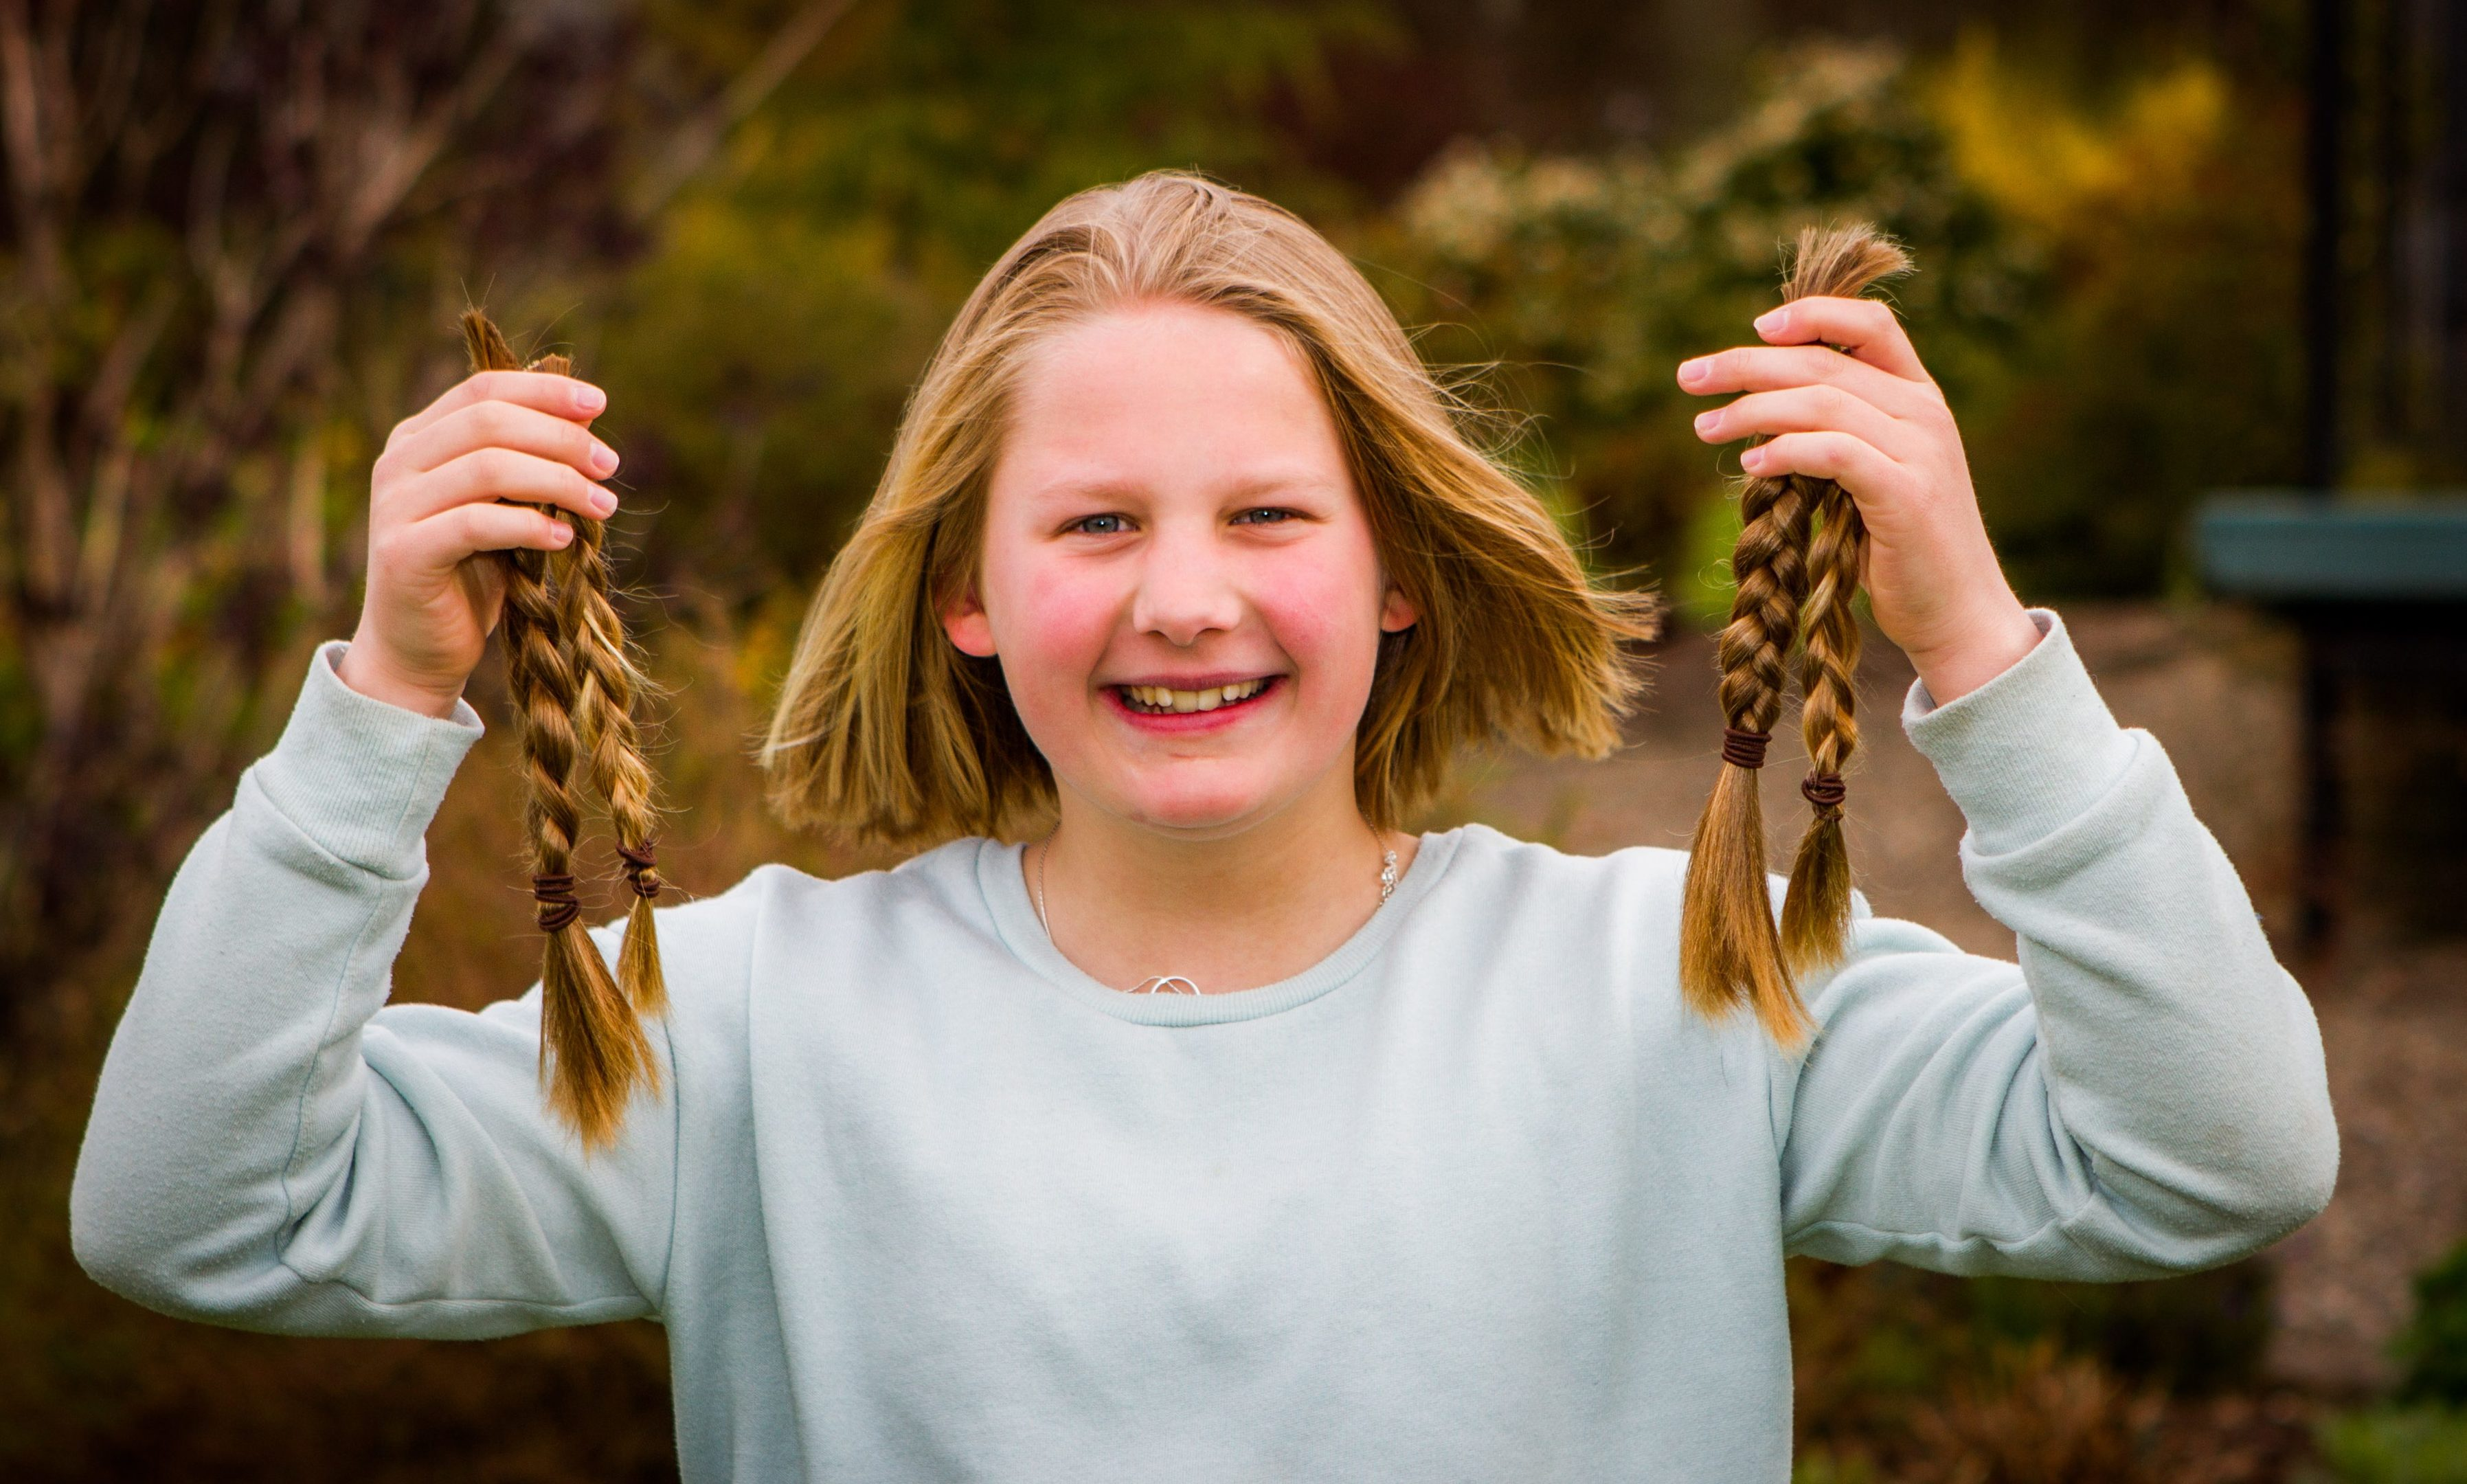 Grace Cameron, 12, has had her hair chopped for Little Princess charity.